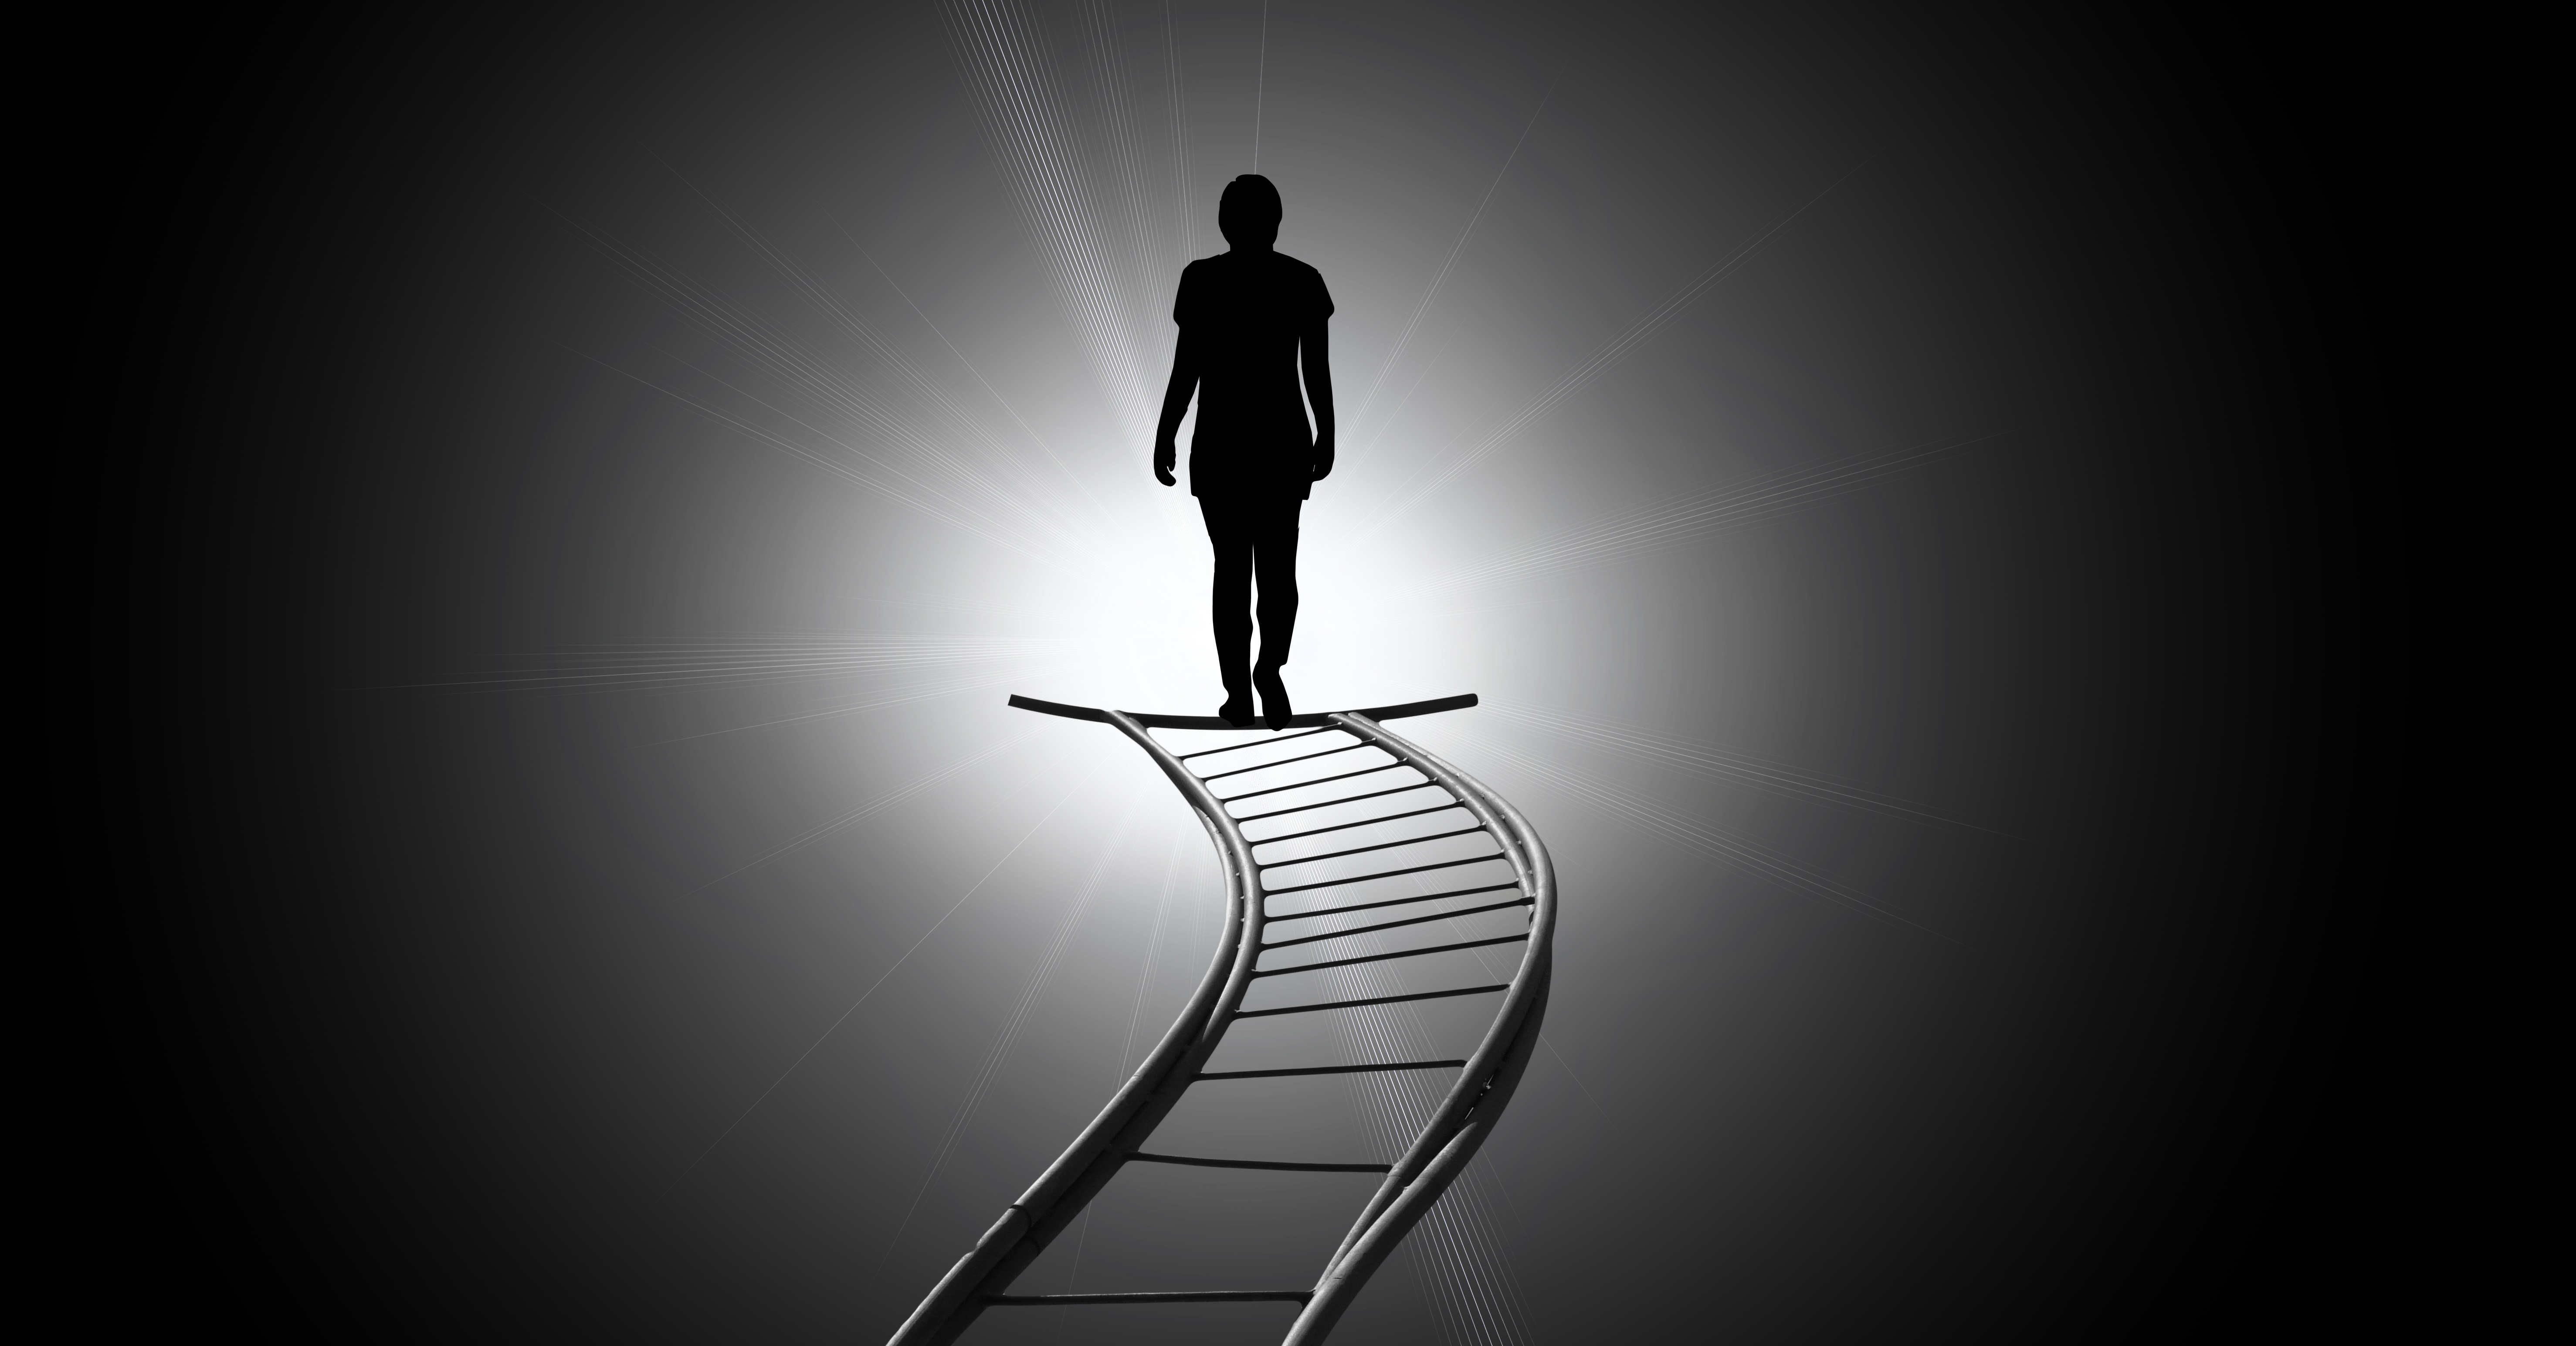 65495 download wallpaper Art, Silhouette, Bw, Chb, Stairs, Ladder, Mysterious screensavers and pictures for free